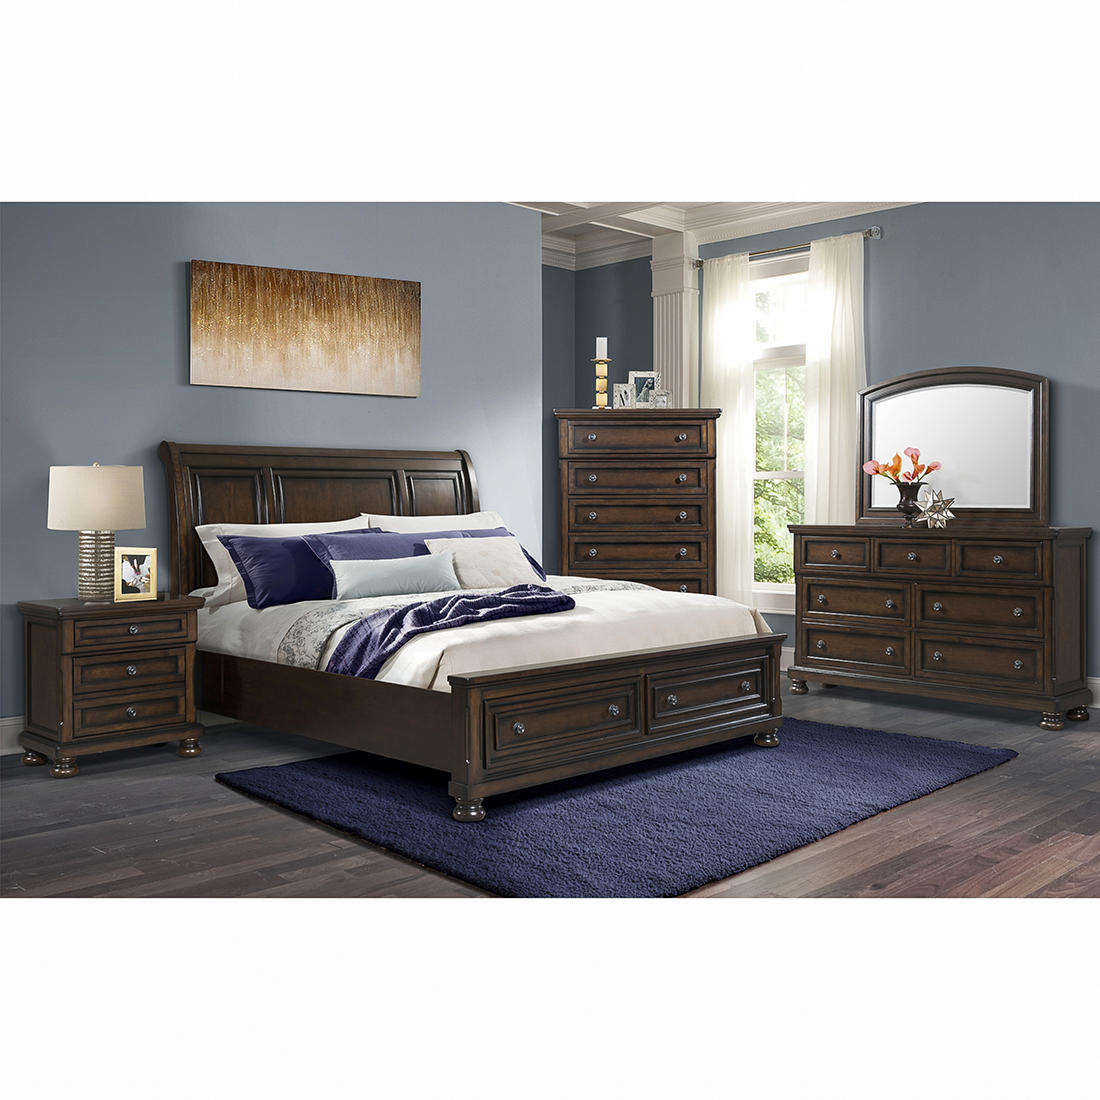 Bedroom Sets.Westbrook 5 Pc Queen Size Storage Bedroom Set Cherry Bjs